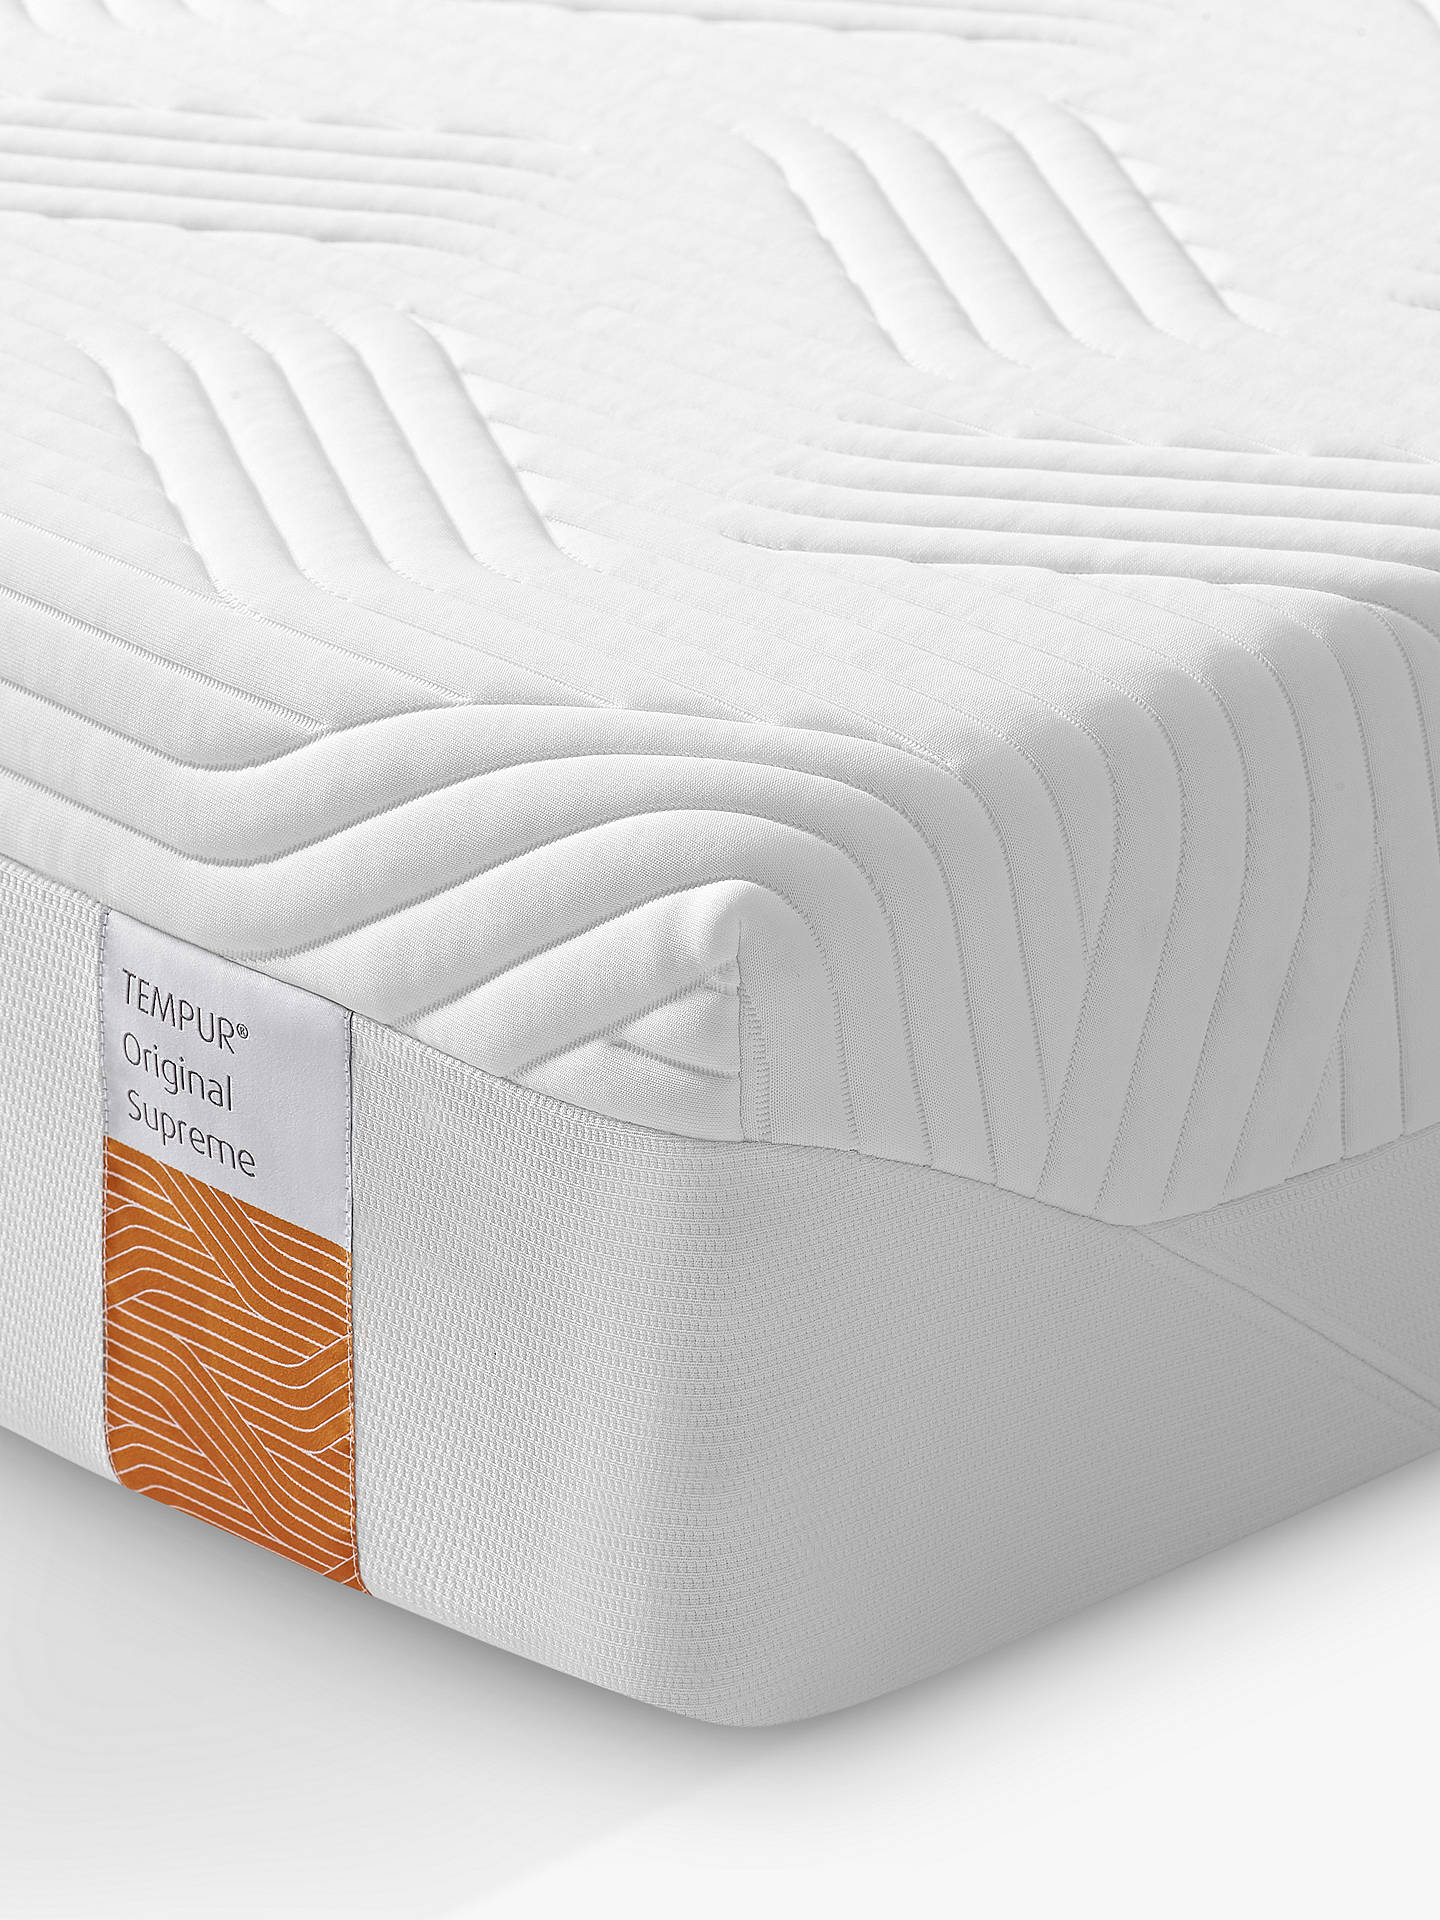 Buy Tempur Original Supreme Memory Foam Mattress, Medium Tension, Double Online at johnlewis.com